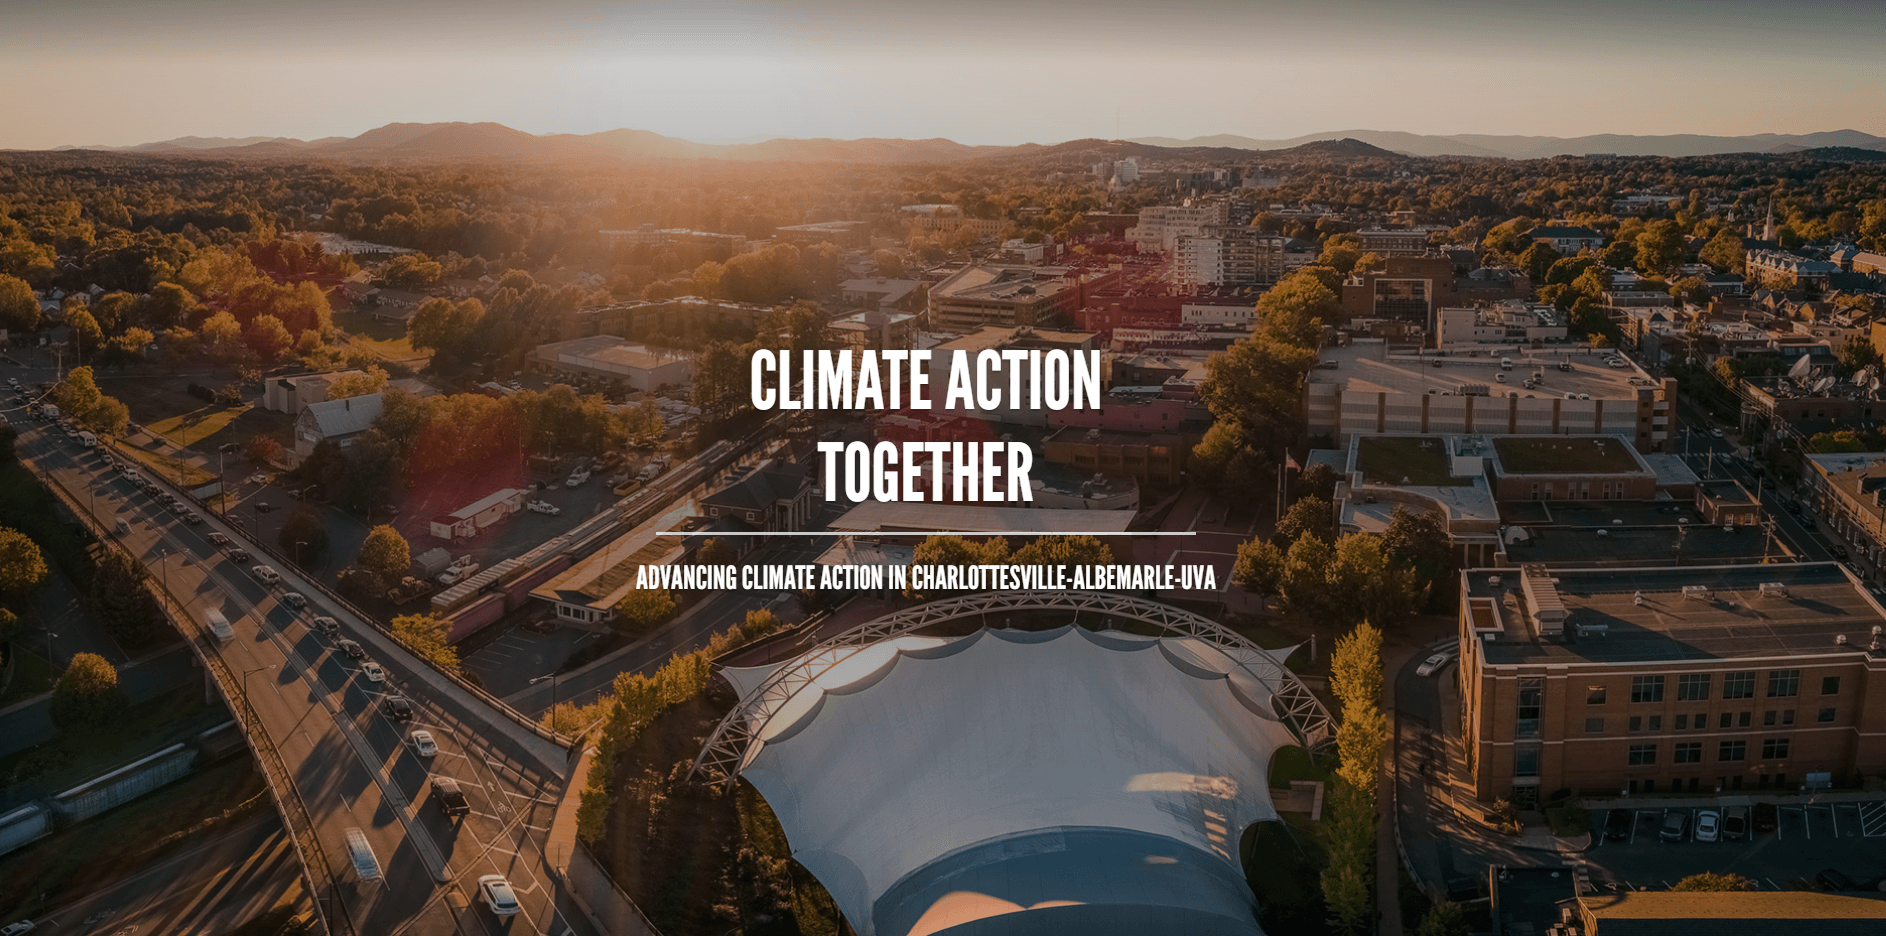 Image of the Climate Action Together website Opens in new window